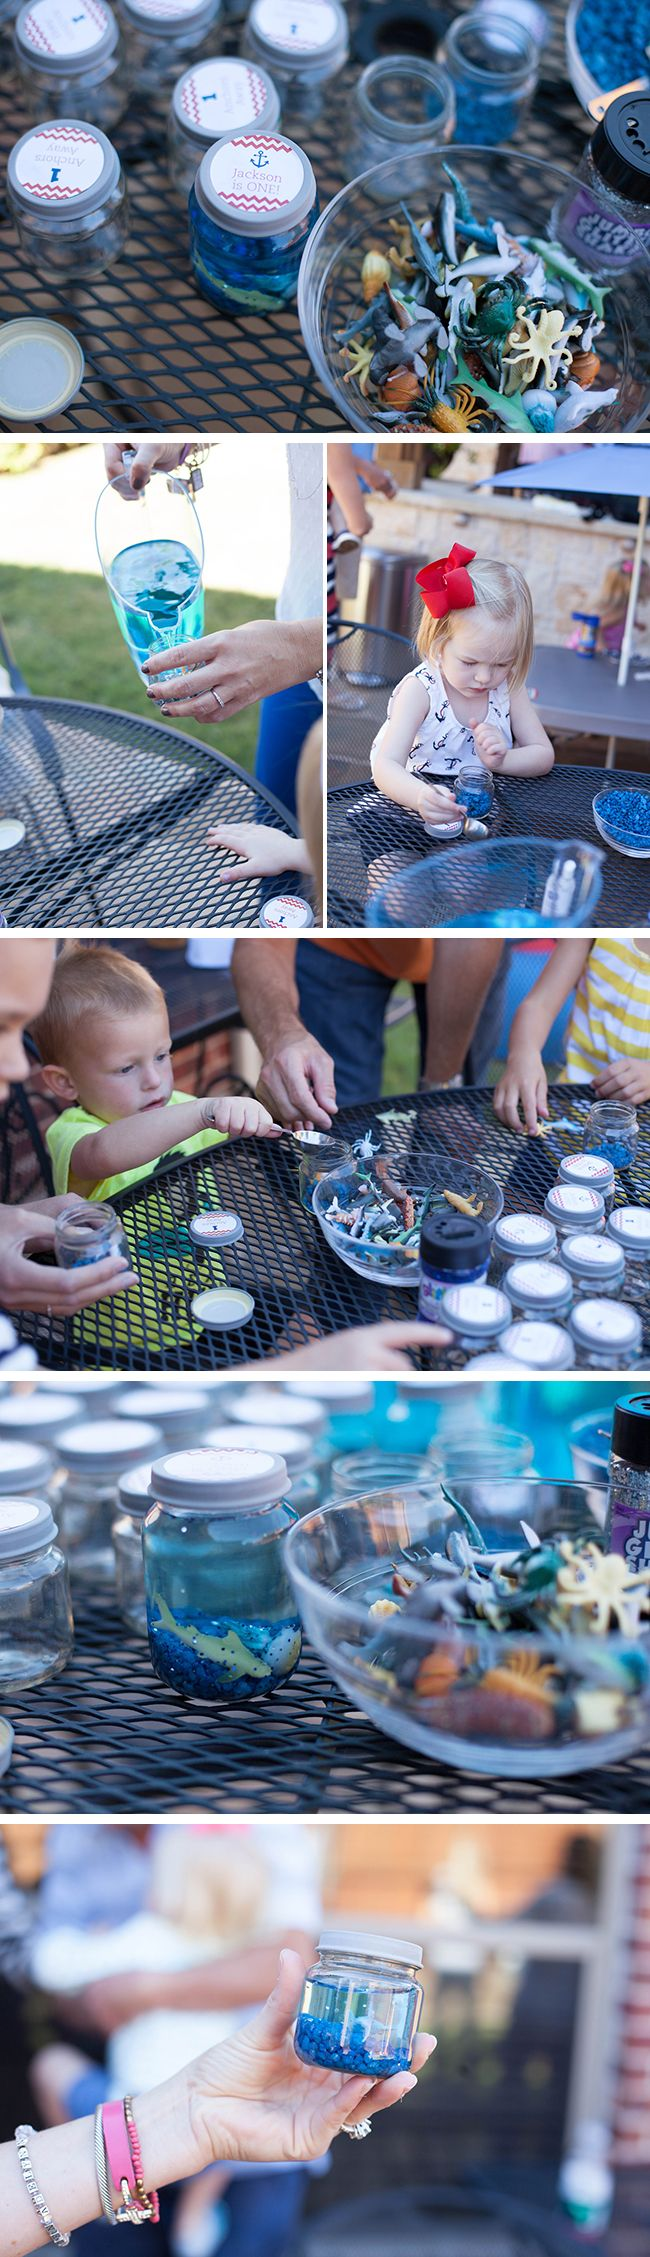 Nautical theme birthday party - DIY mini aquarium party favors                                                                                                                                                                                 More